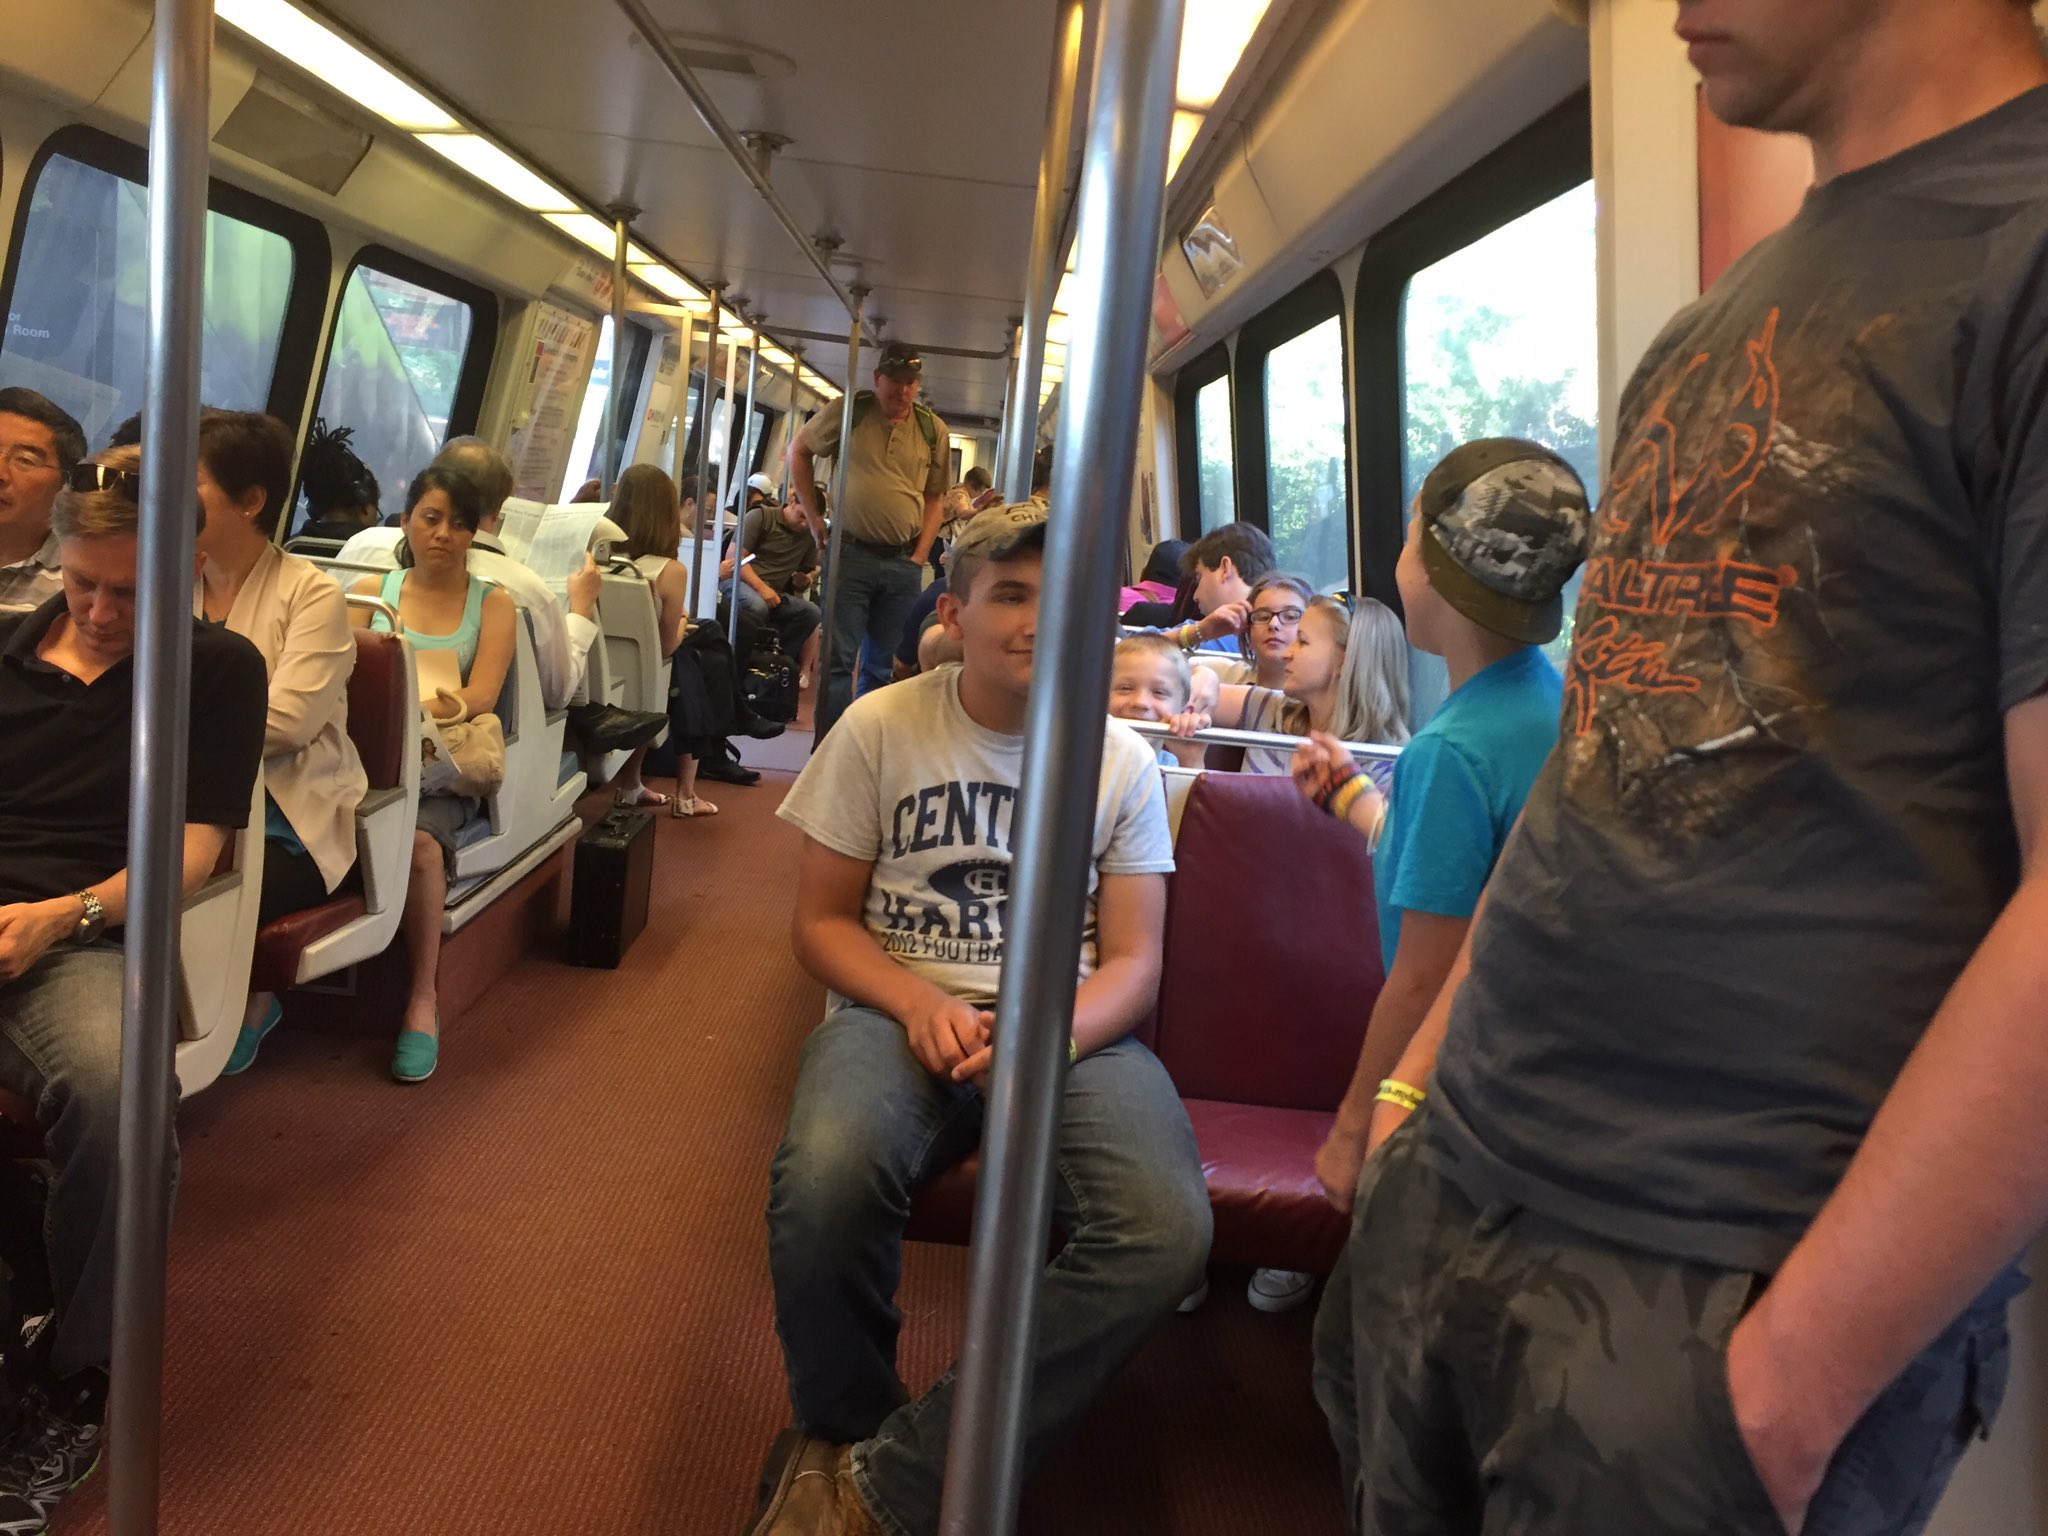 Metro new hires to handle daily communications, manage track work